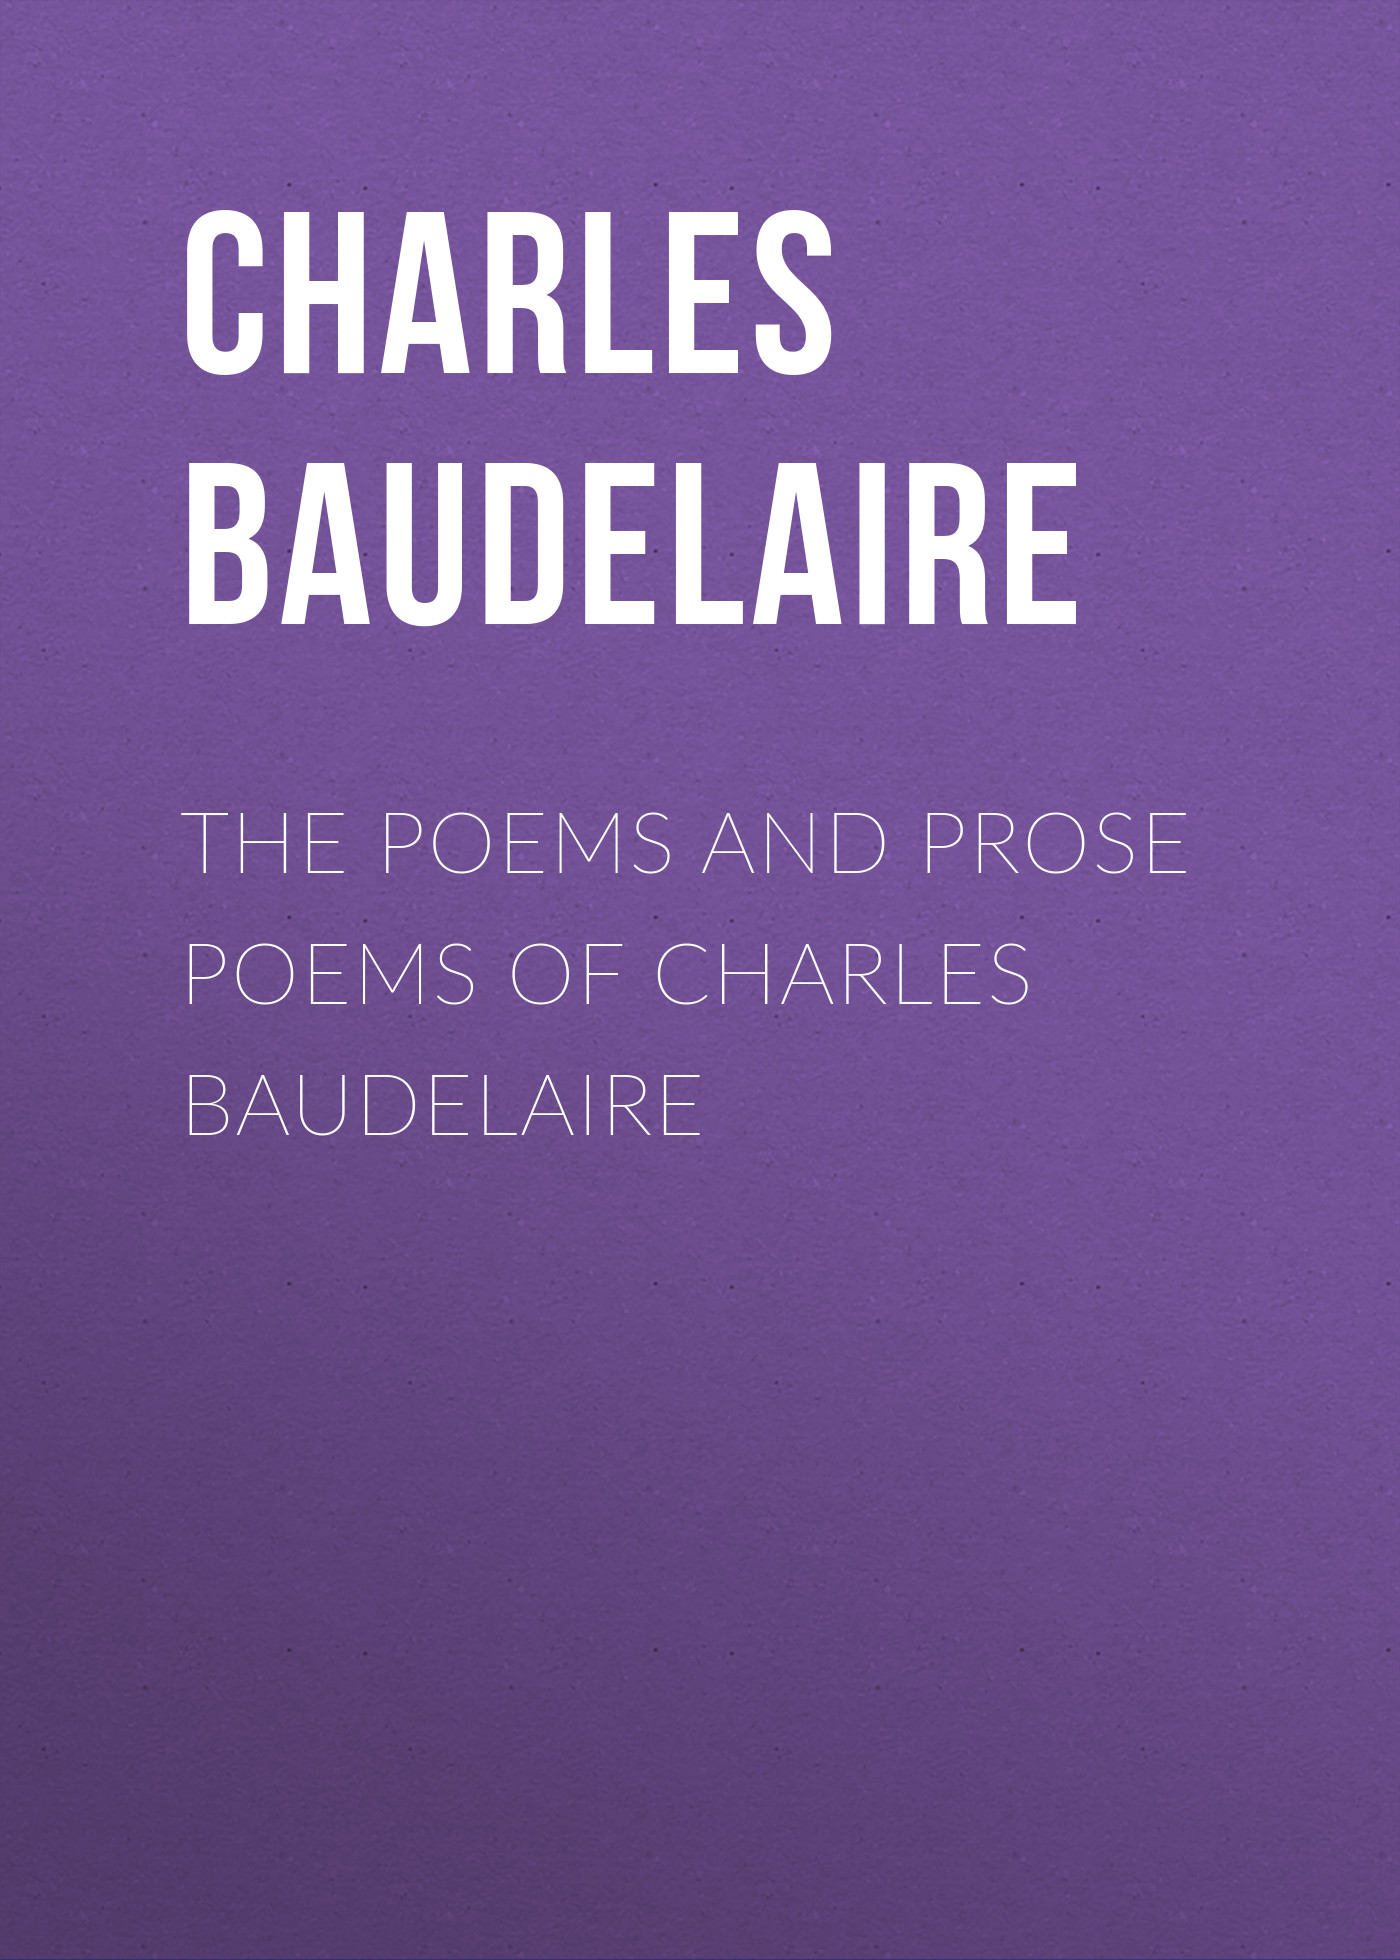 Baudelaire Charles The Poems and Prose Poems of Charles Baudelaire baudelaire charles the poems and prose poems of charles baudelaire